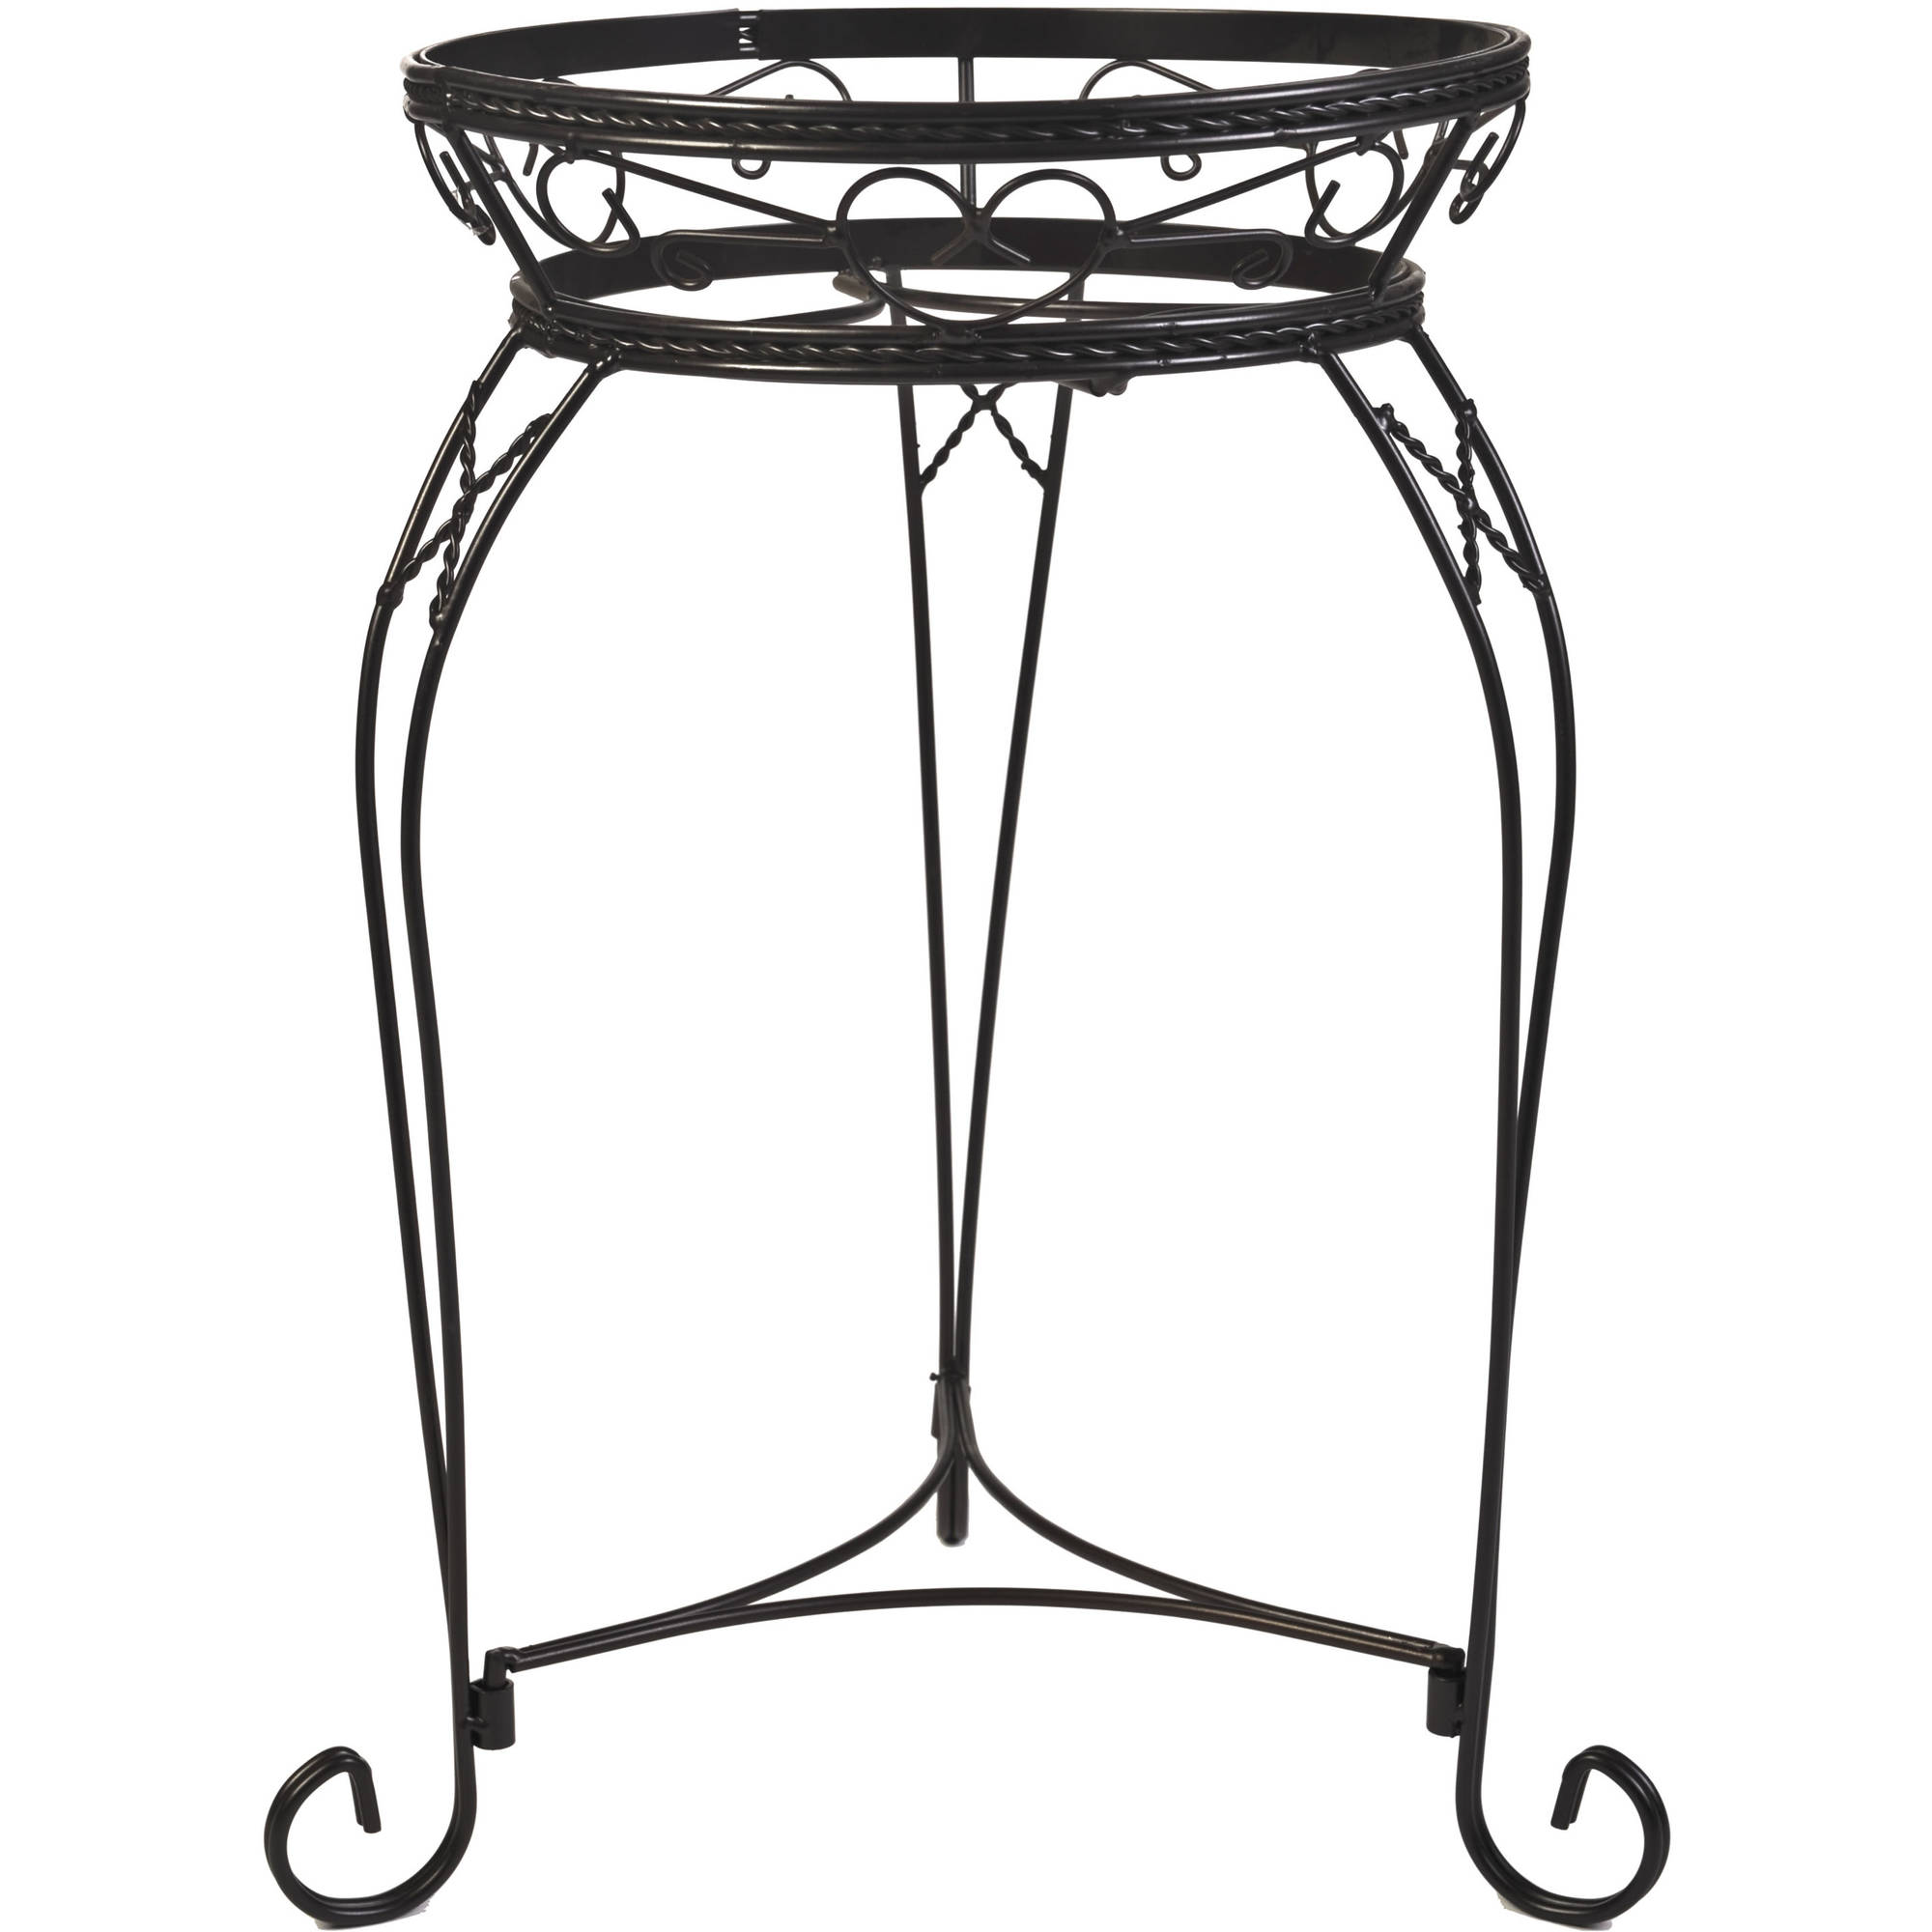 "CobraCo 21"" Scroll Braided Bronze Finish Plant Stand"